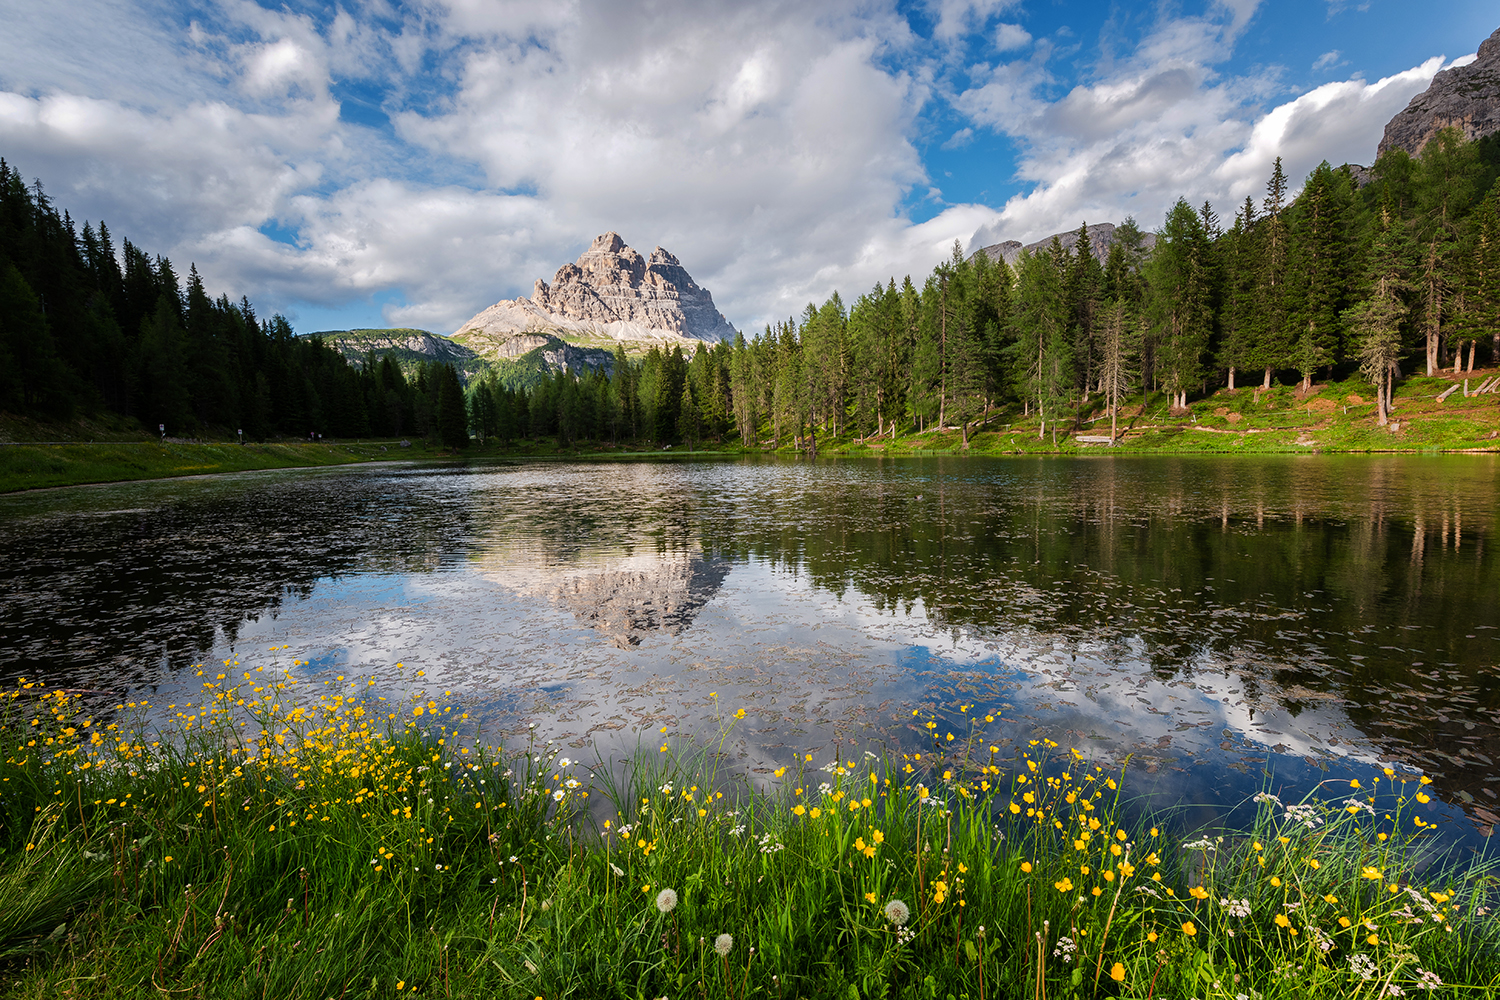 Lake Antorno in the Dolomites example image 1